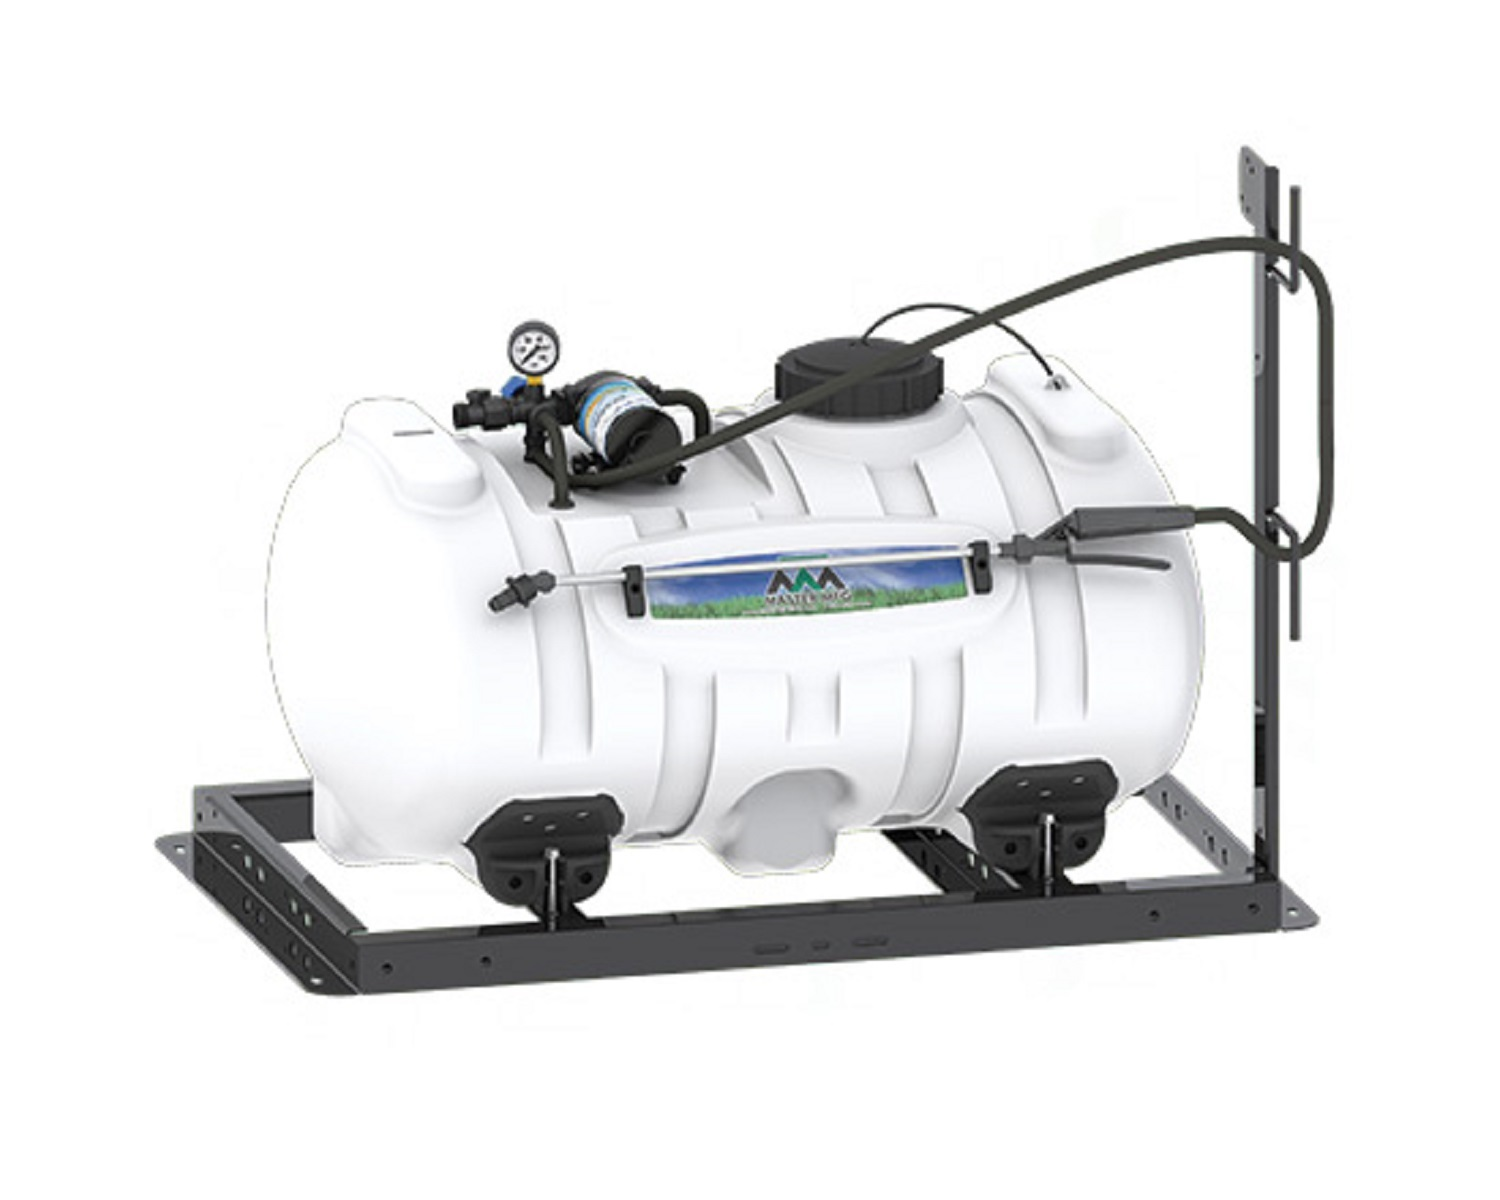 Herbicide 40 Gallon Skid Sprayer with 3 GPM and 43 similar items